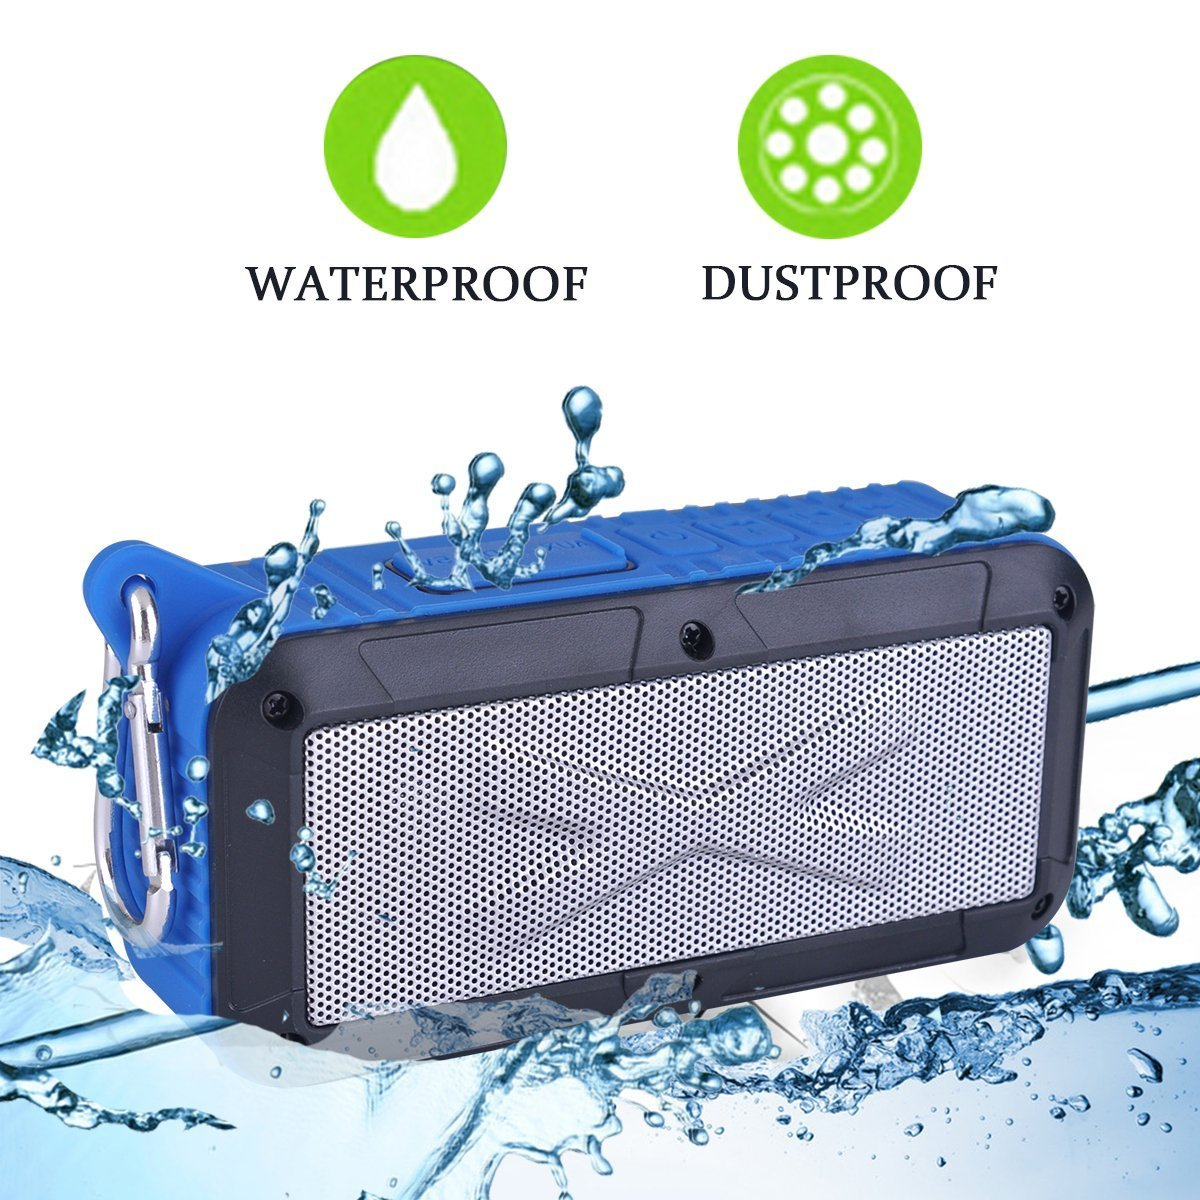 Solar/Battery Powered 2x3W Bluetooth Speaker Splashproof Portable Wireless MP3 Player With Built-in Micphone, FM Radio/MicroSD Card (Blue)